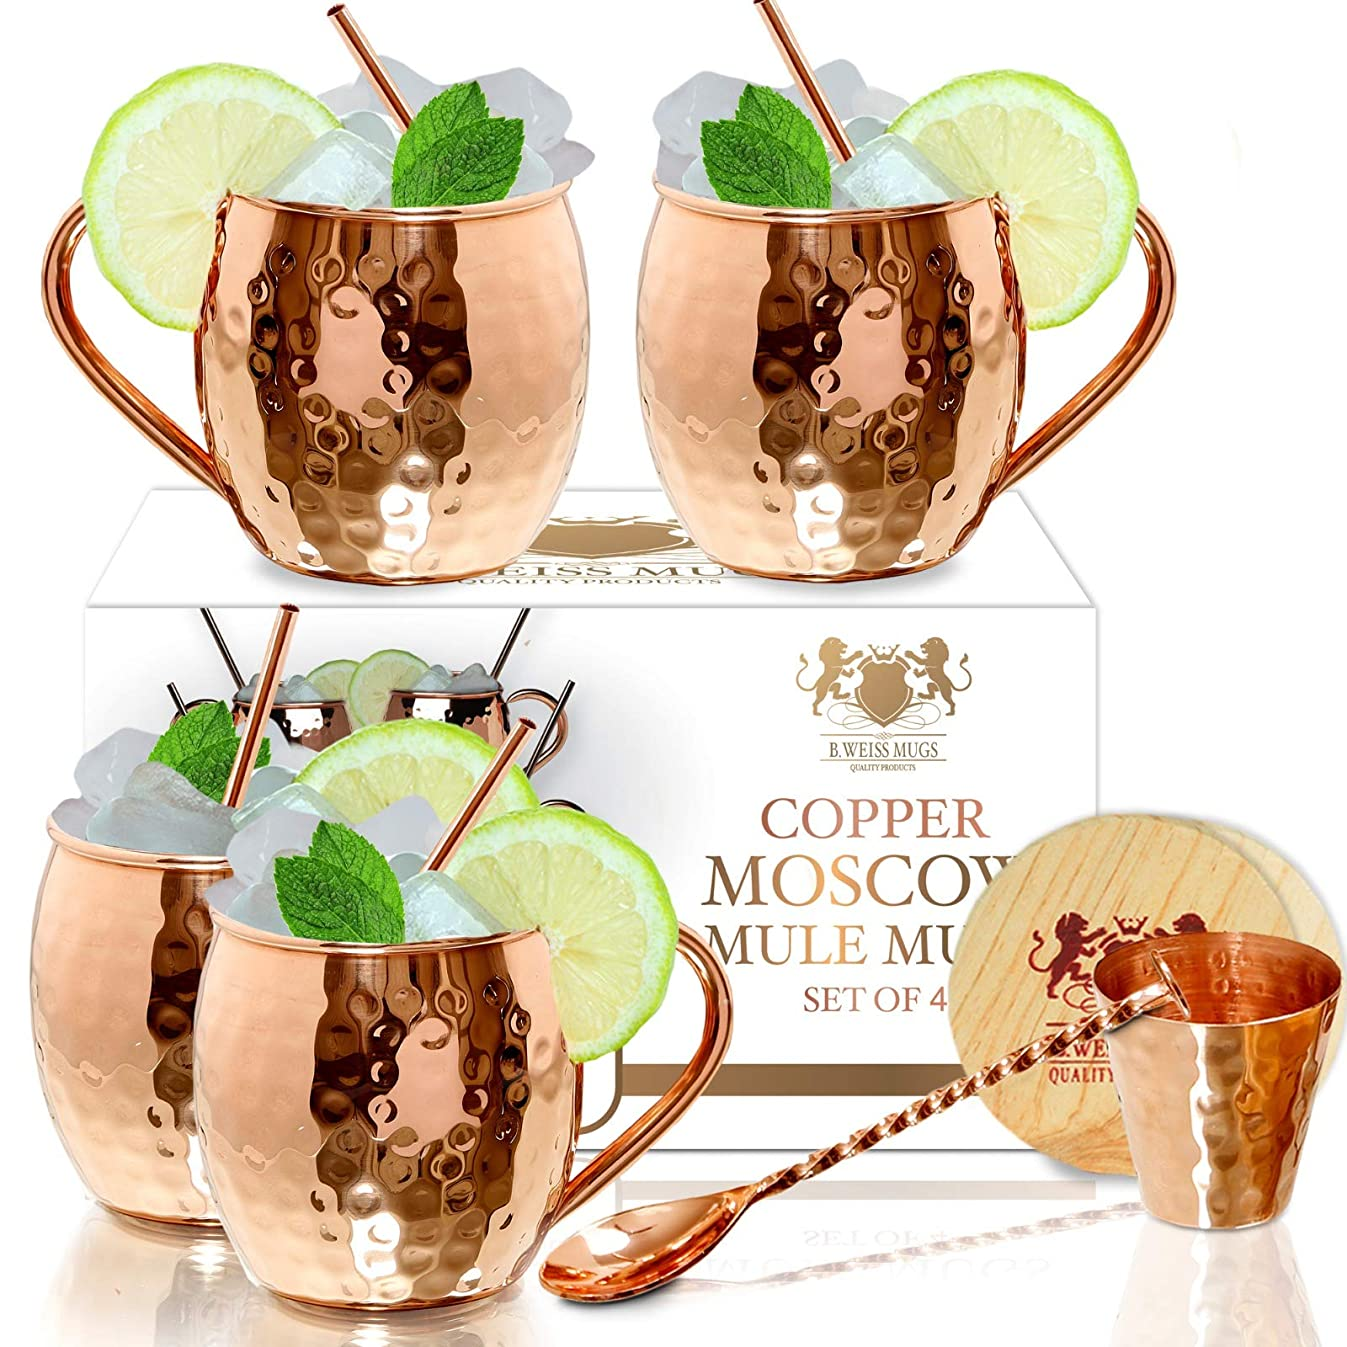 Moscow Mule Copper mugs Set Of 4 By B.WEISS Handmade Hammered Copper Cups 100% Pure Copper +Bonus: 4 copper straws 4 coasters 1 shot mug 1 spoon